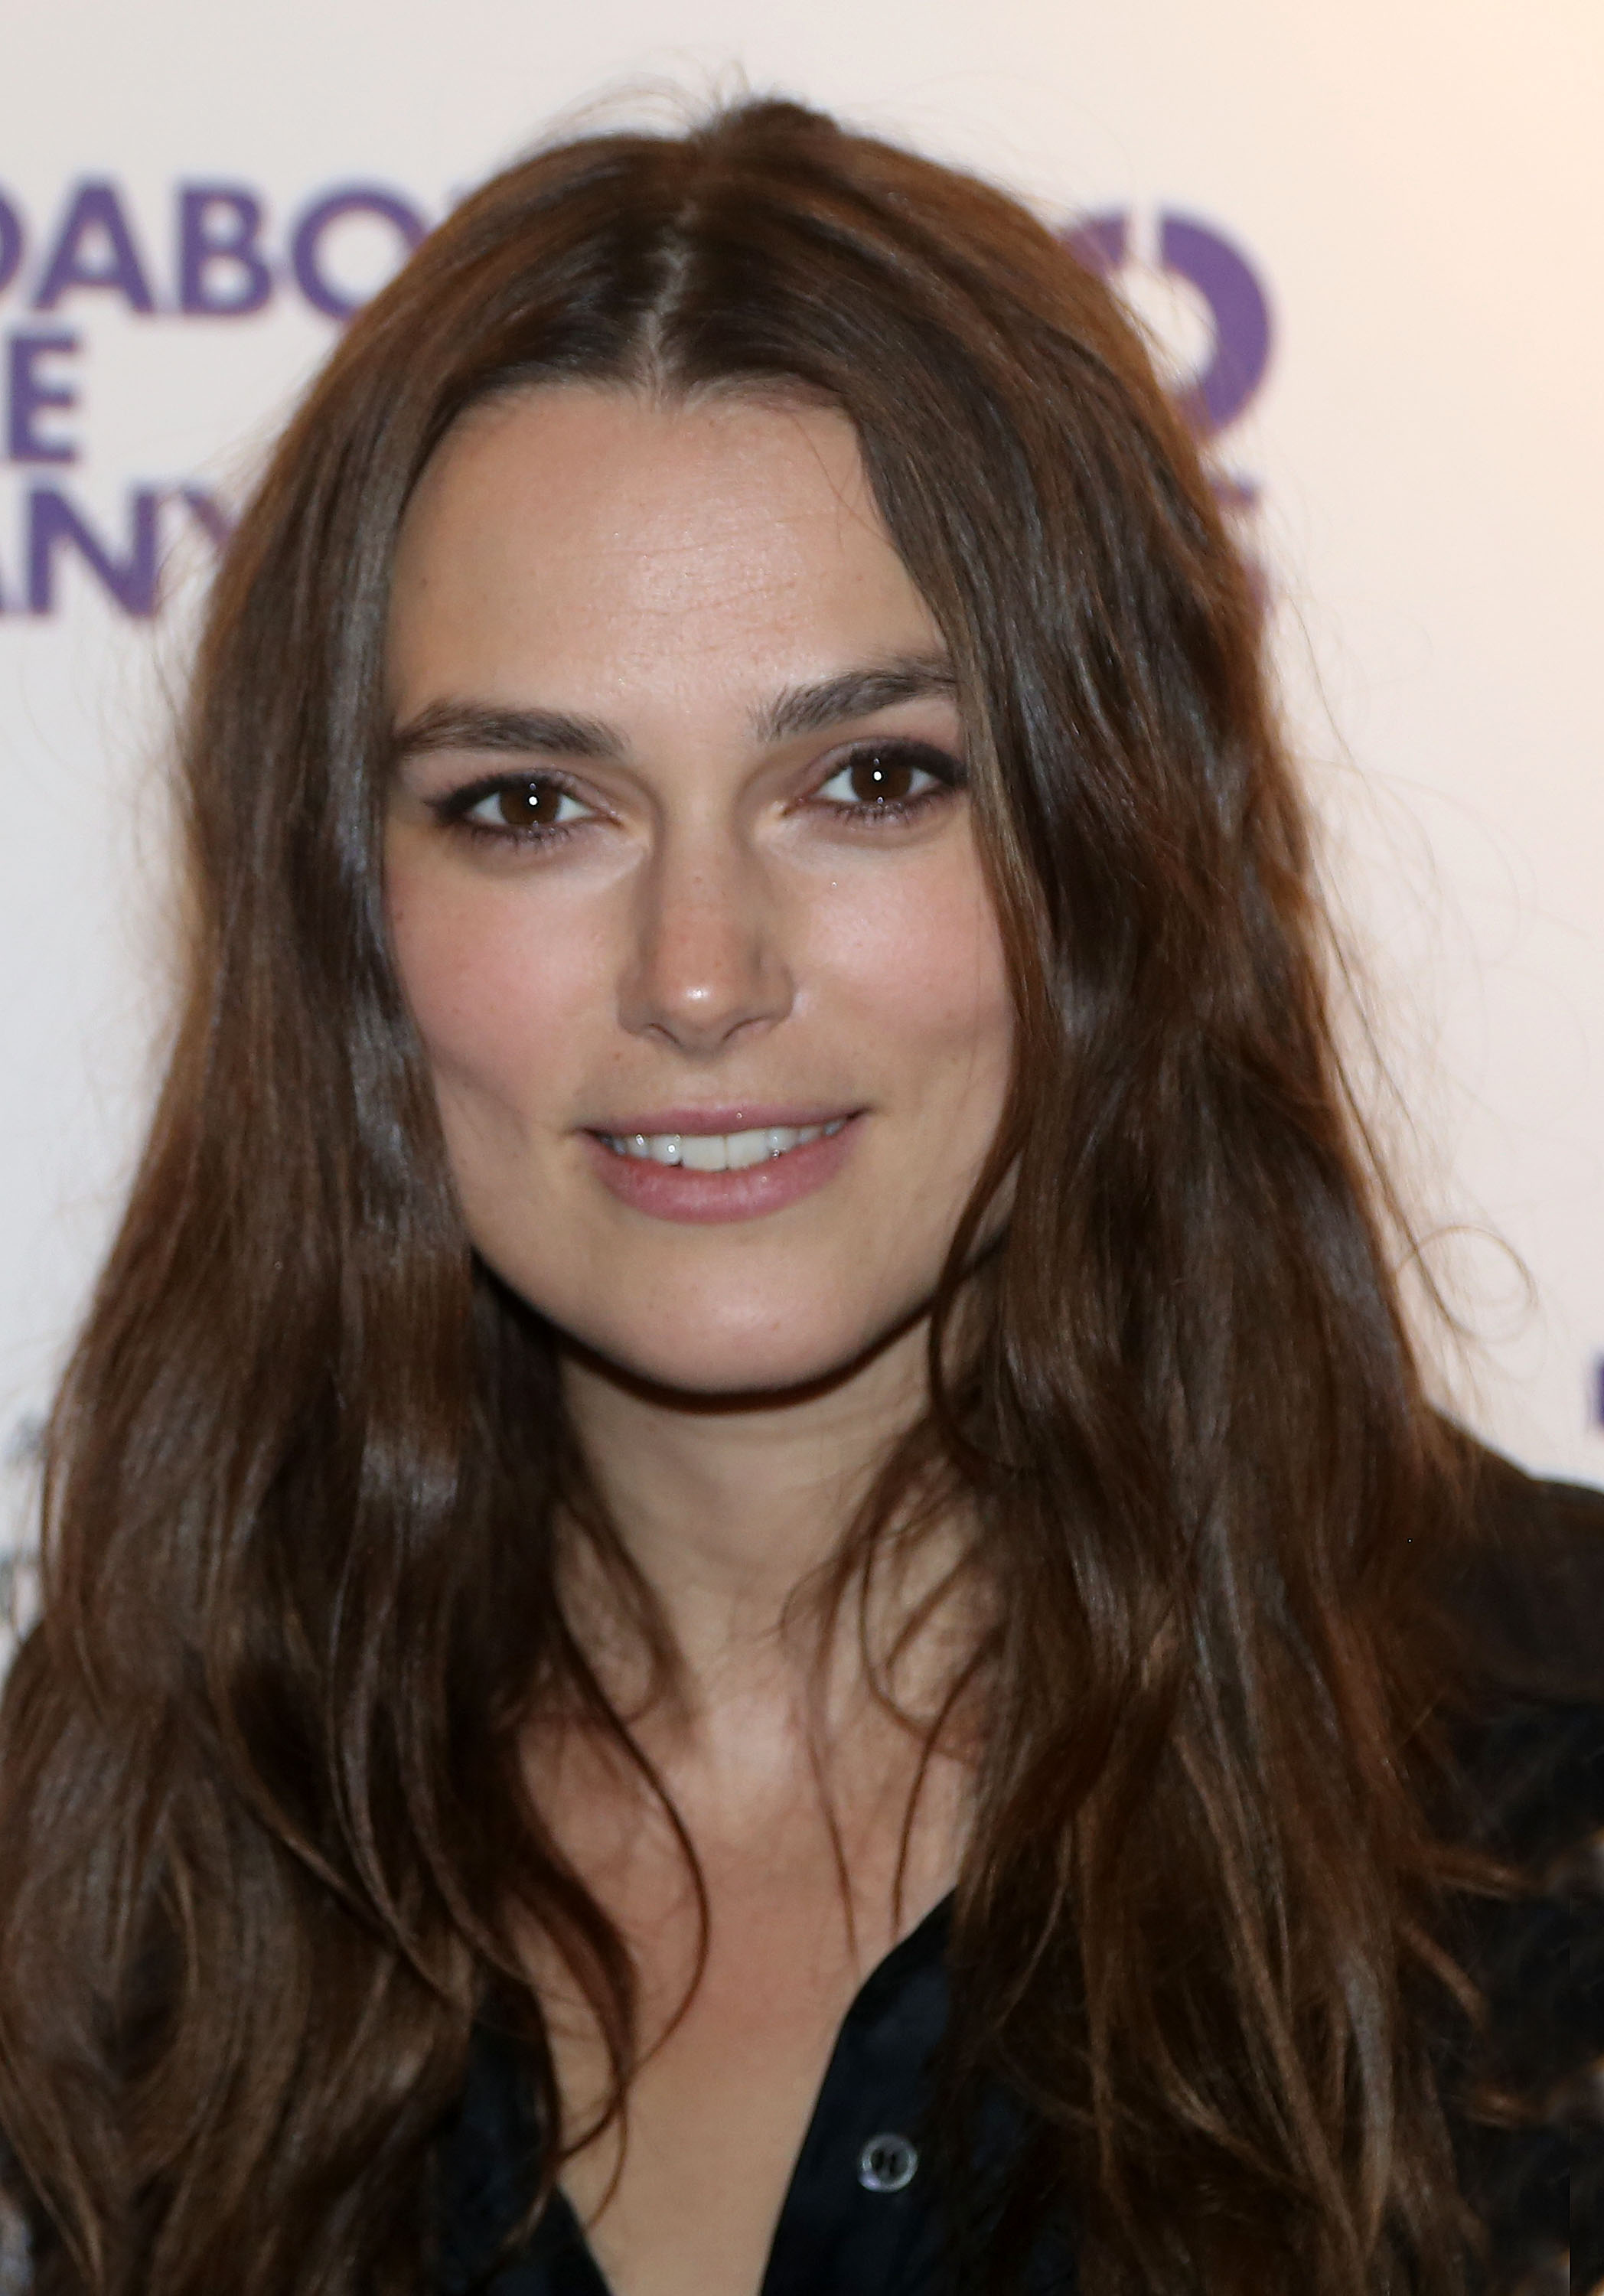 Keira Knightley at the Roundabout Theater Company's 50th Anniversary Season Party in New York City  on Sept. 10, 2015.